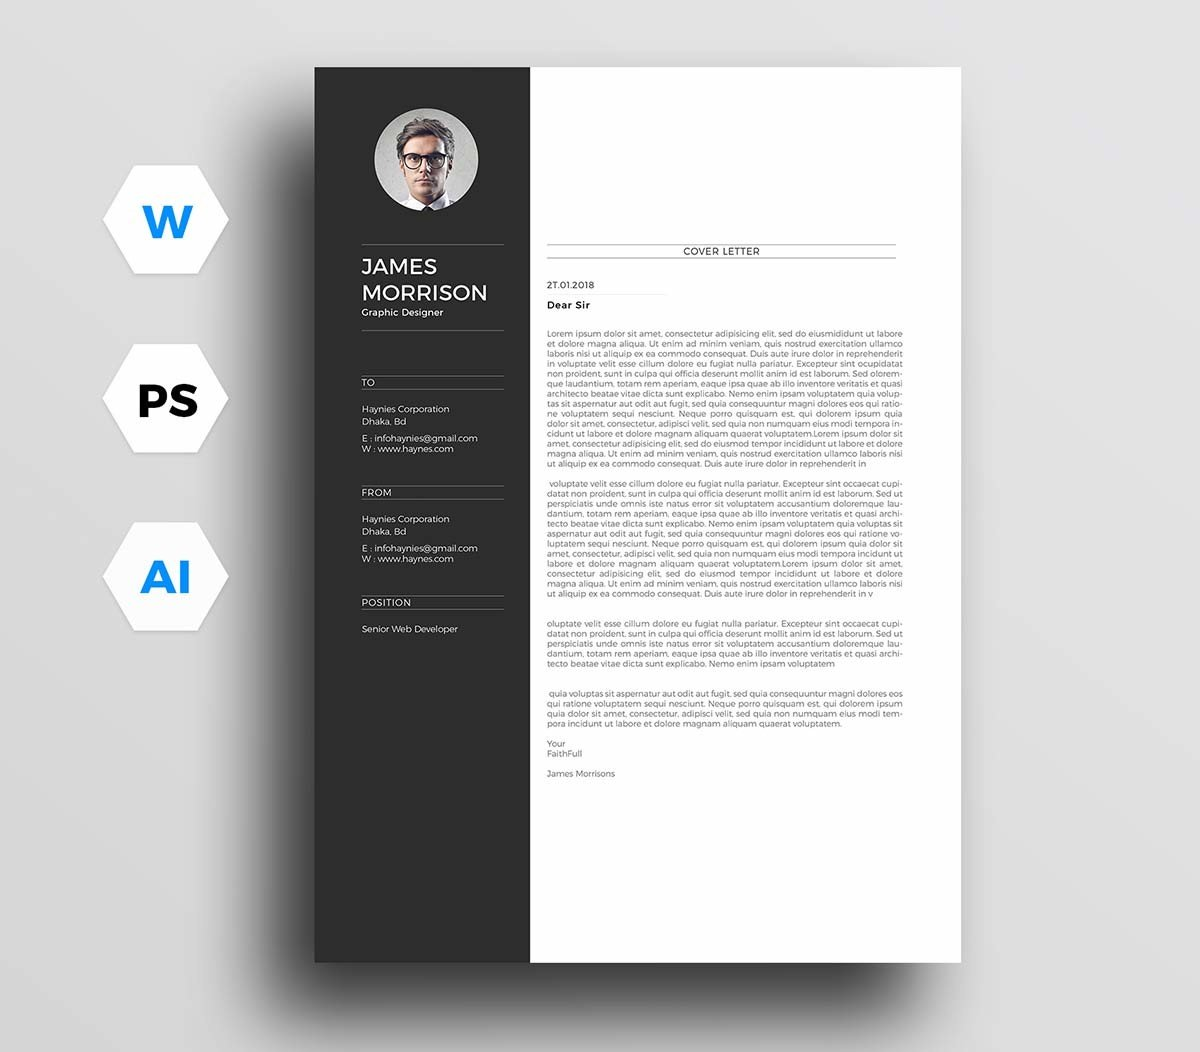 Free Sample Cover Letter For Resume 12 Cover Letter Templates For Word Best Free Downloadable Picks